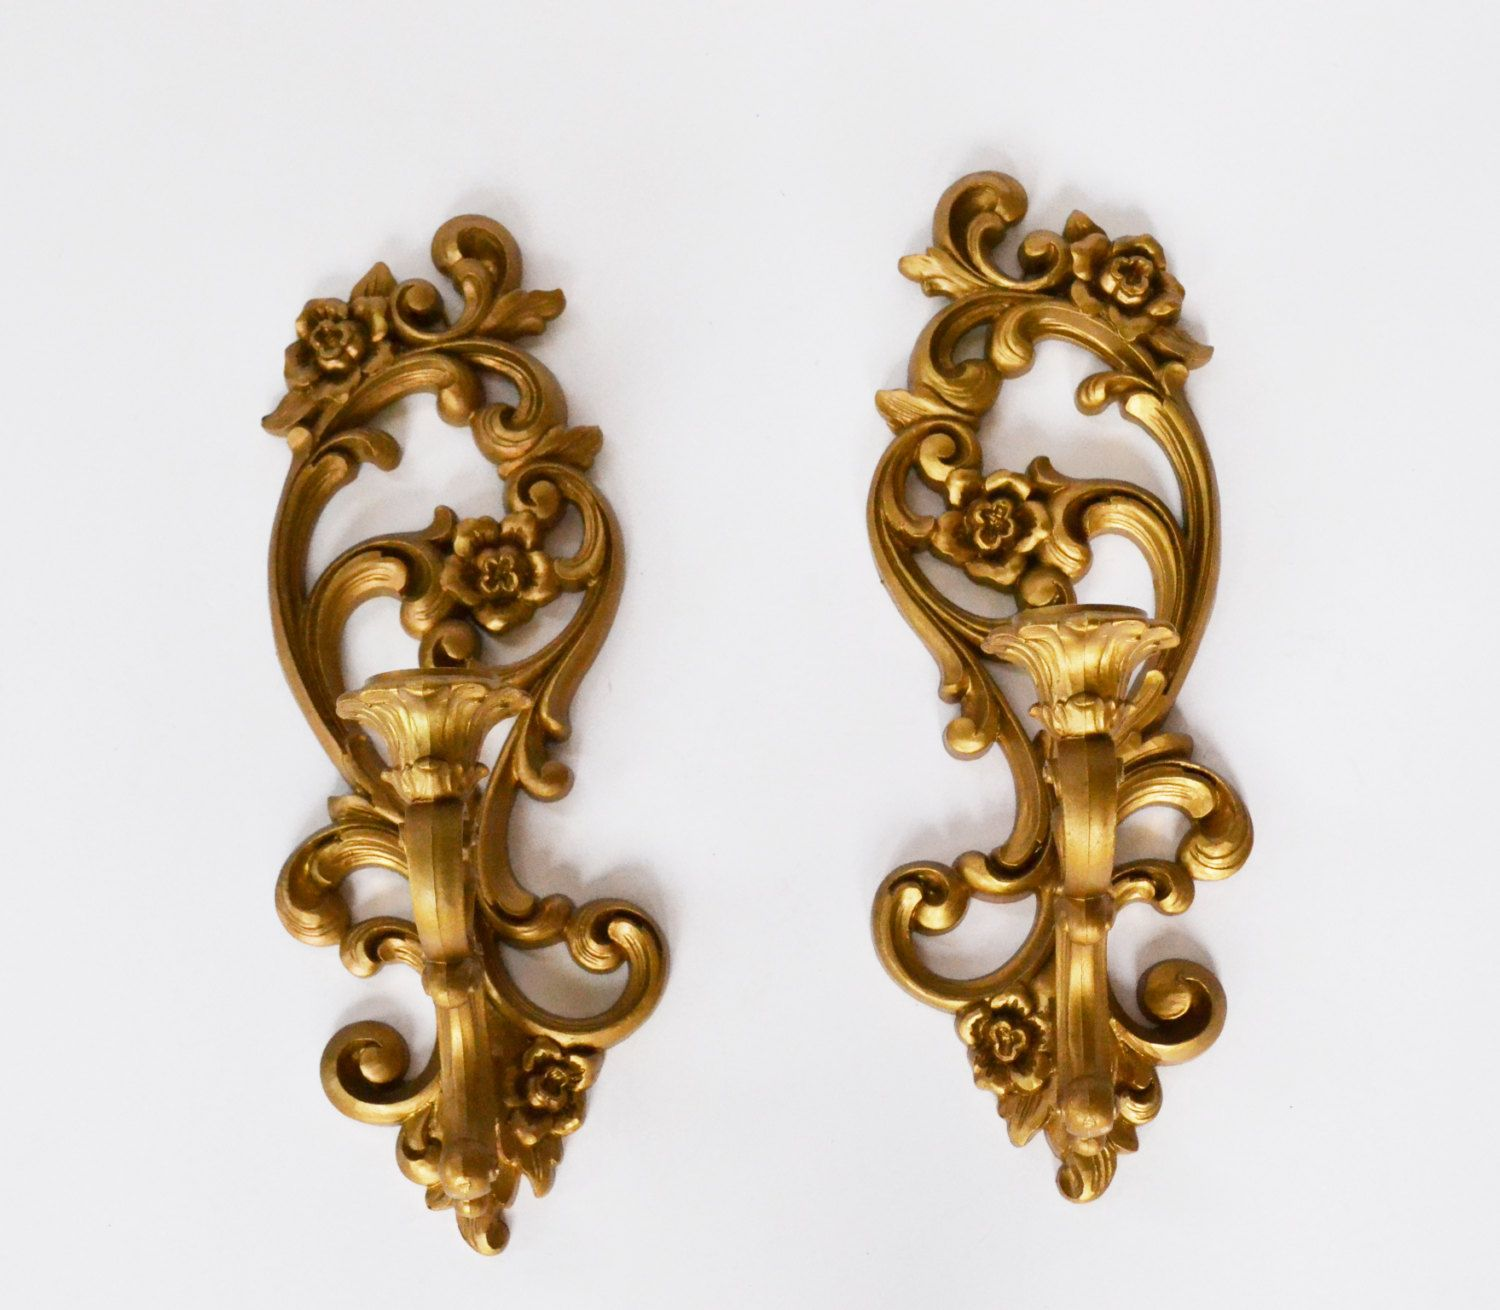 Gold Wall Sconces Gold Candle Holders Syroco Wall Sconces ...